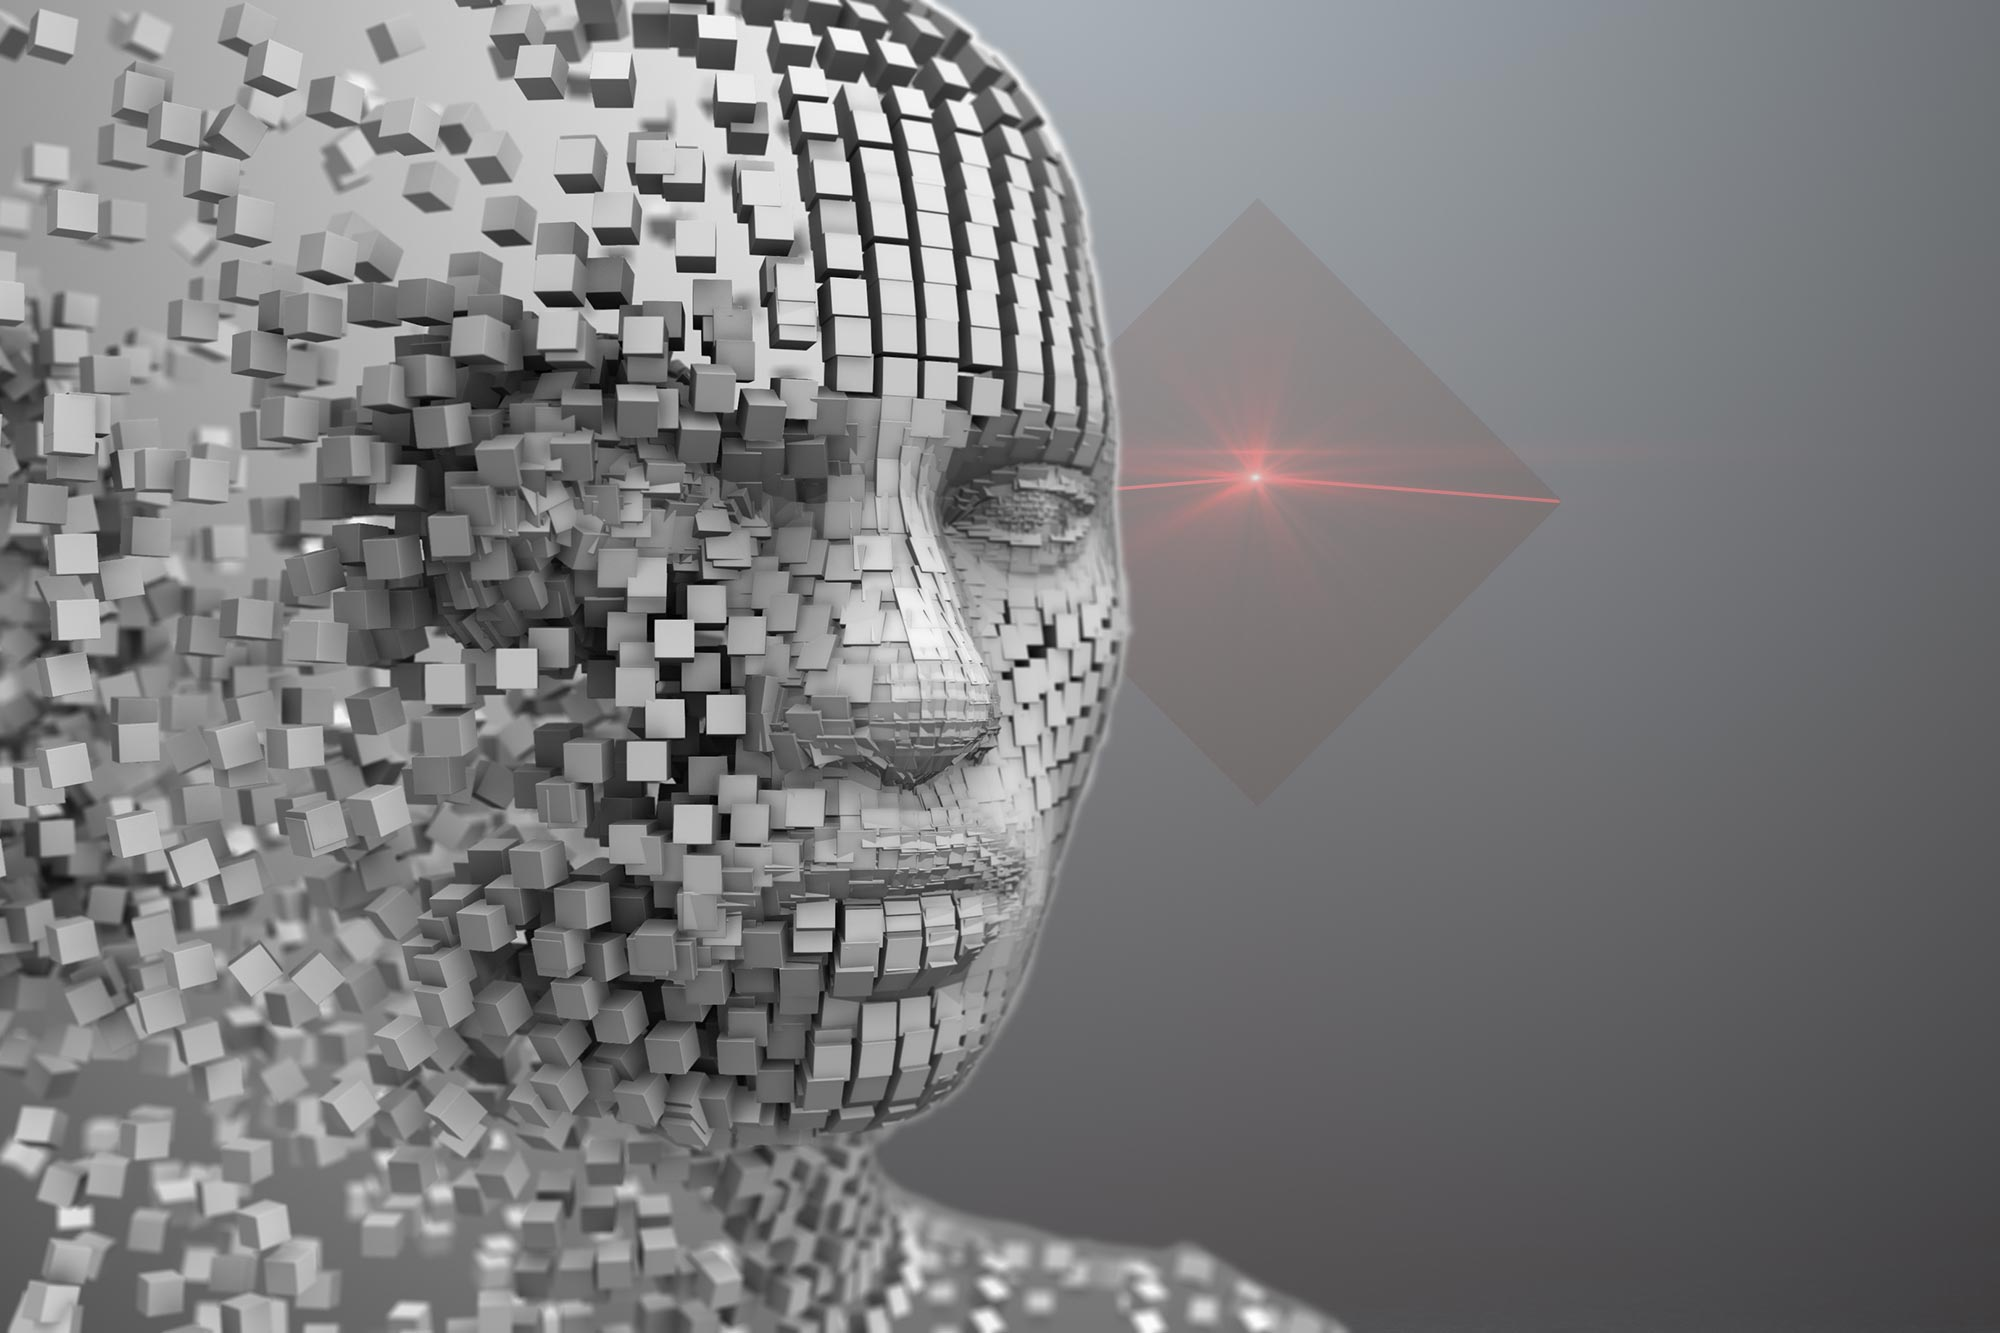 Widely Used AI Machine Learning Methods Don't Work as Claimed